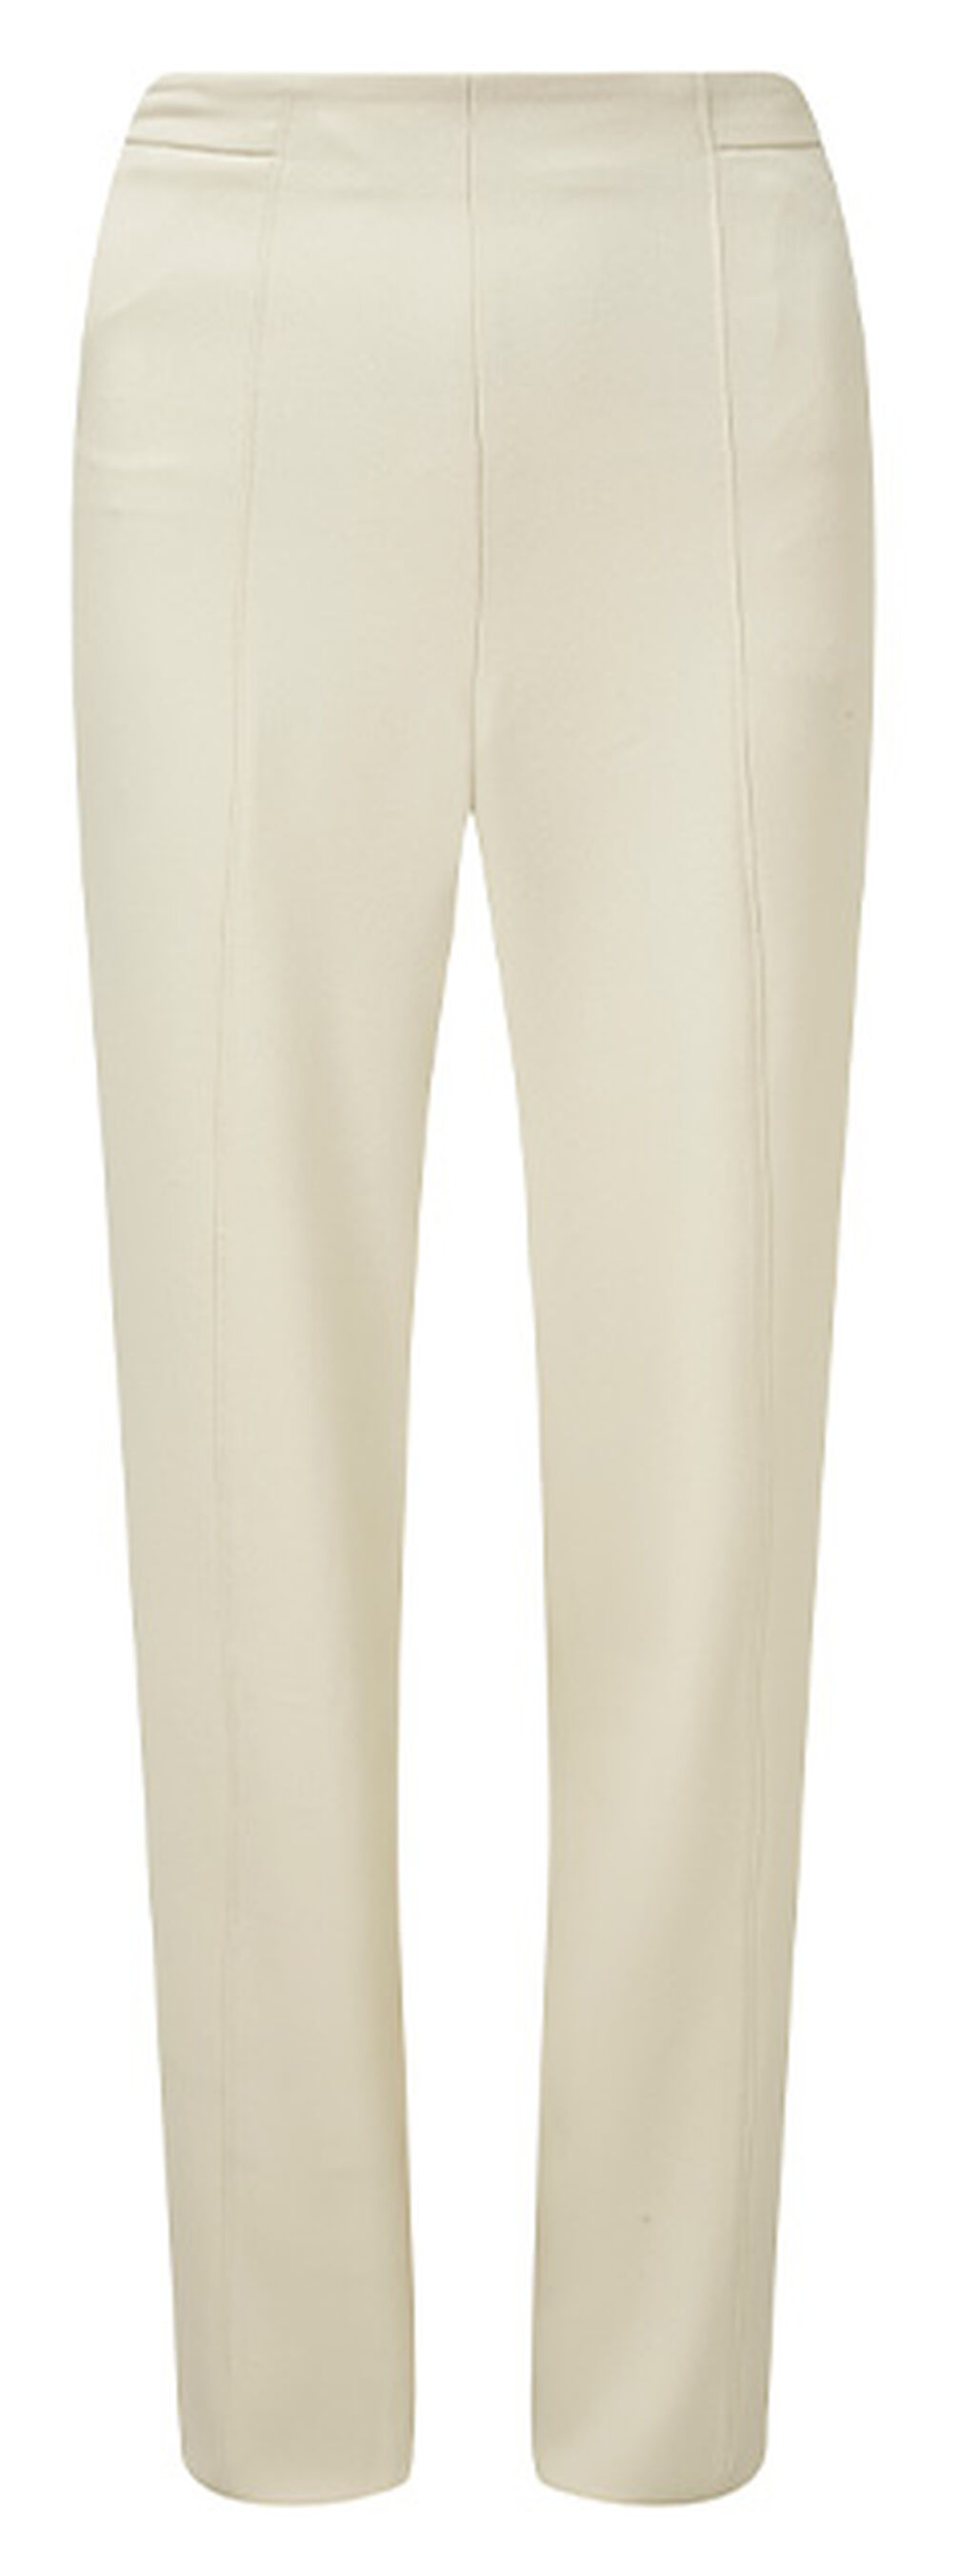 The Blissful Blouse | Occasion Trousers | By Cotton Traders